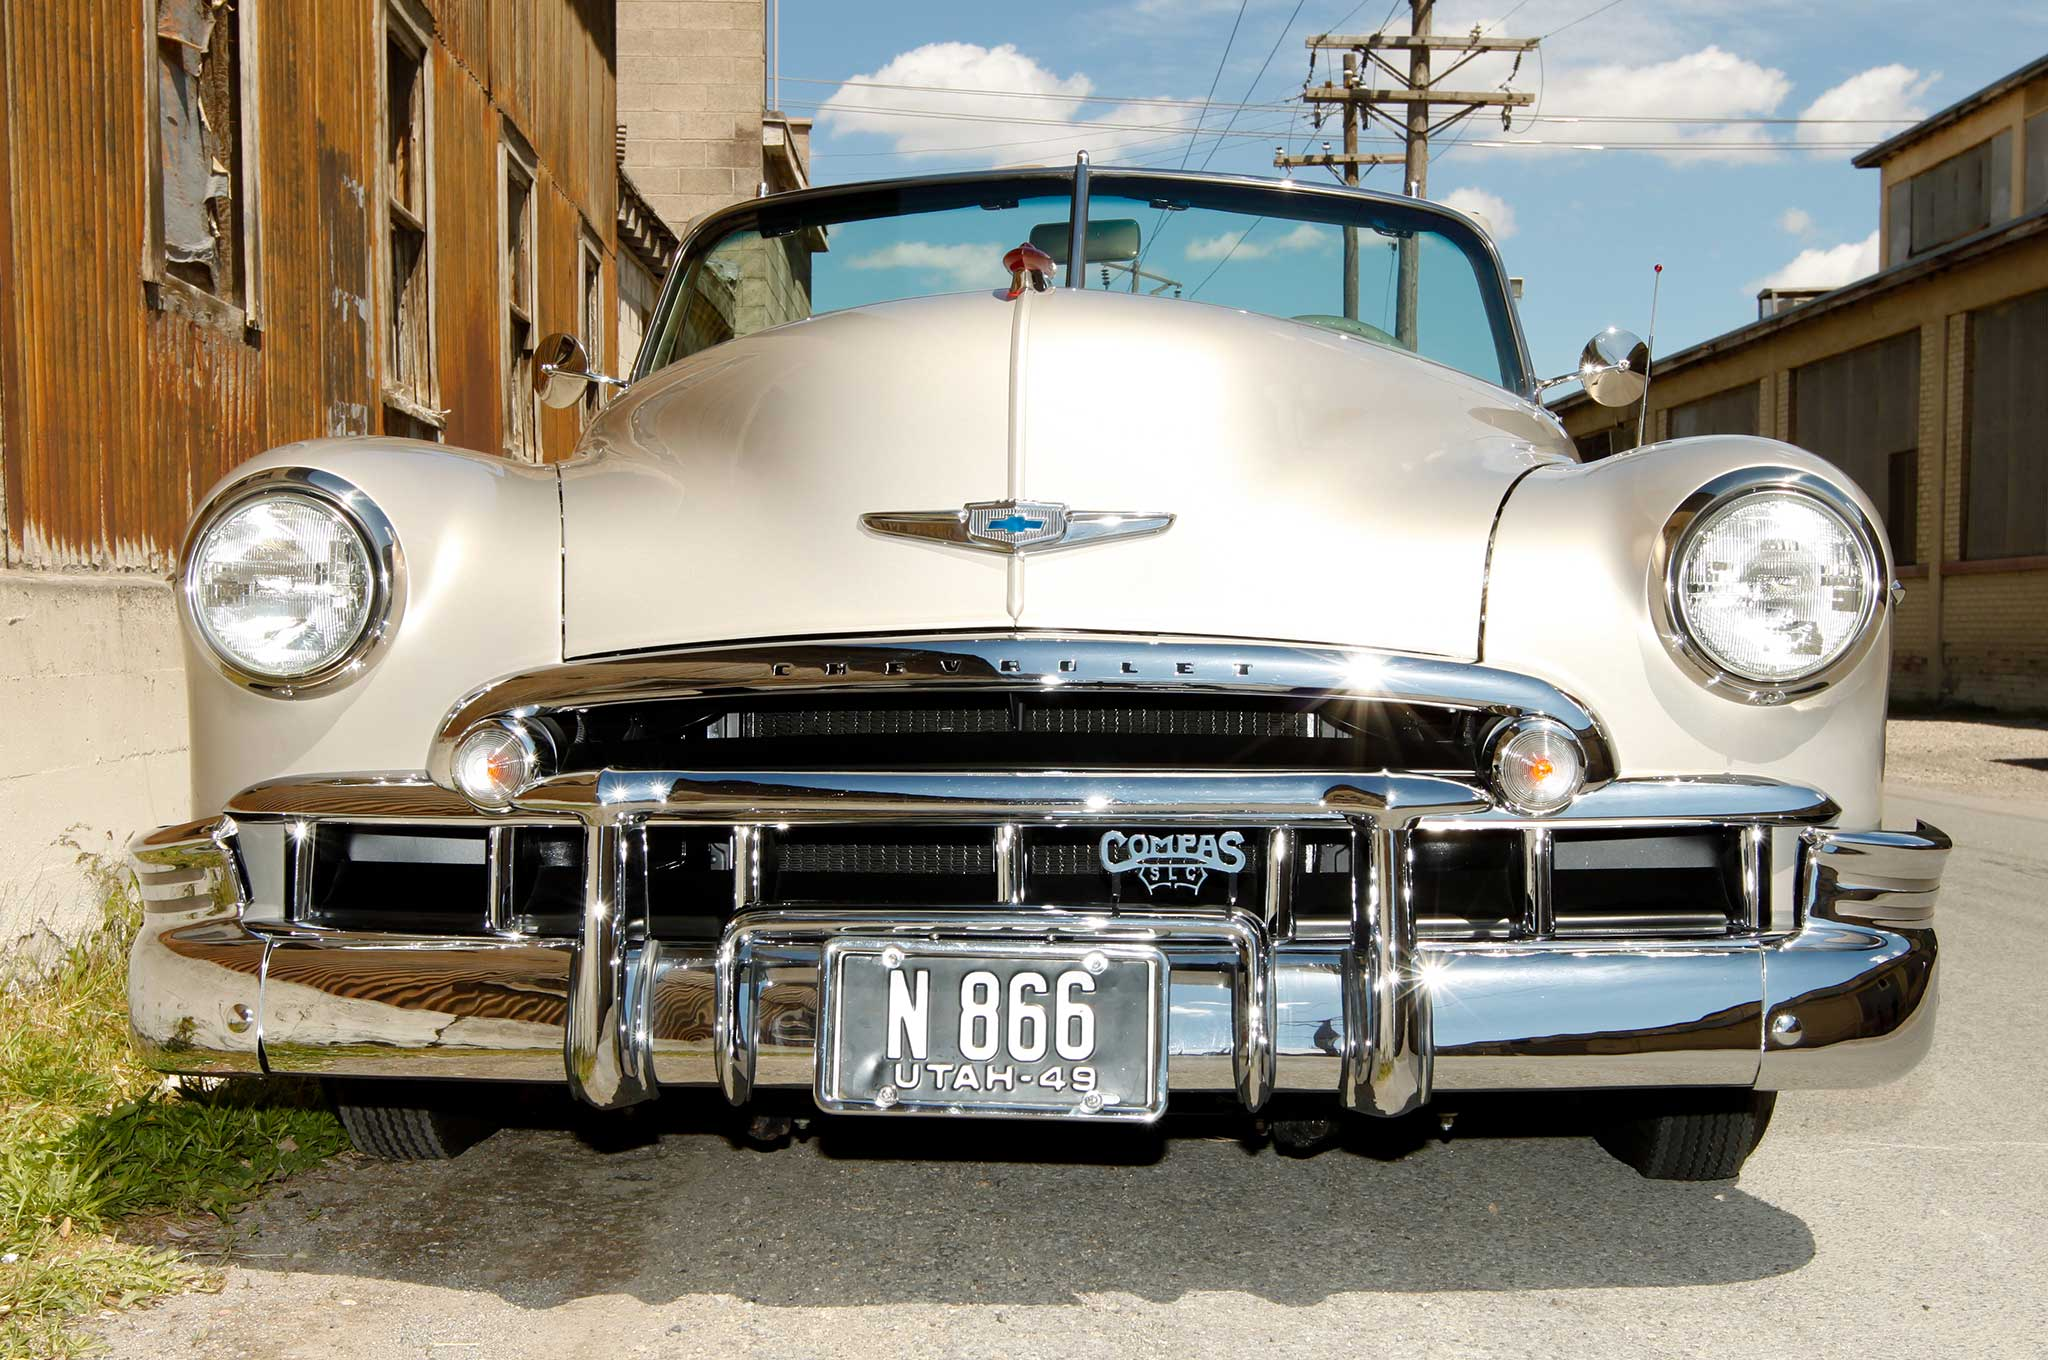 1949 Chevrolet Convertible Post Wwii Era Style Lowrider Chevy Styleline Deluxe 8 23